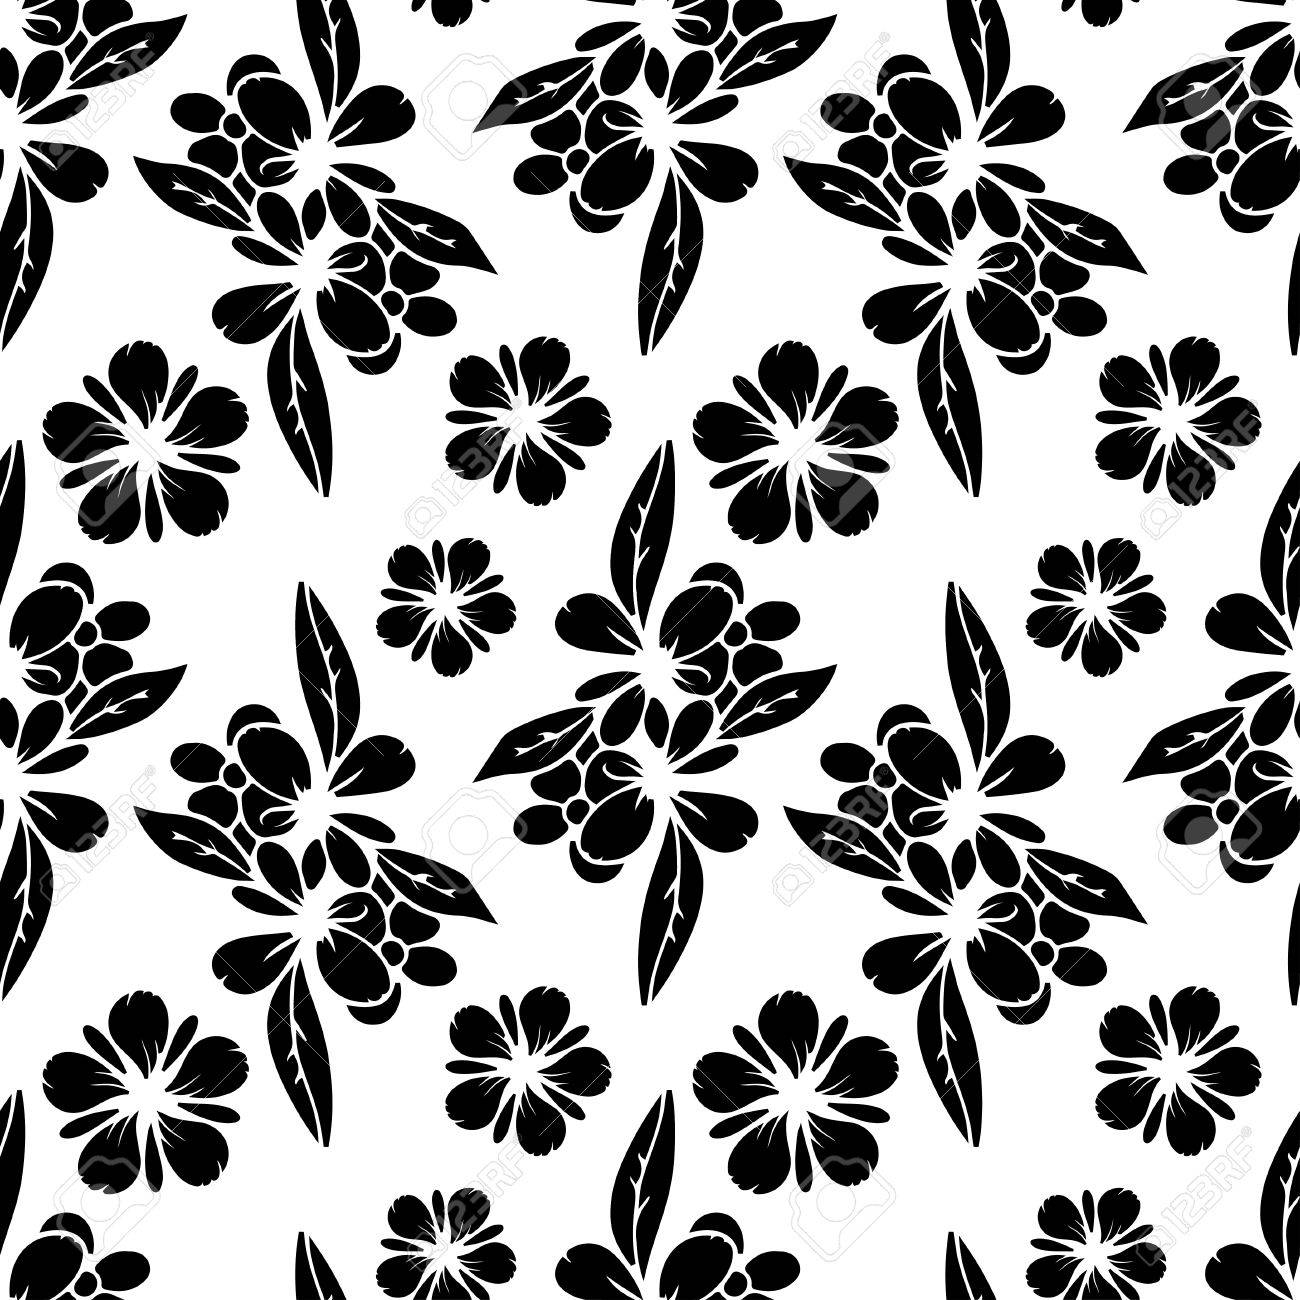 seamless pattern with black silhouettes flowers abstract white floral repeating background texture fabric design